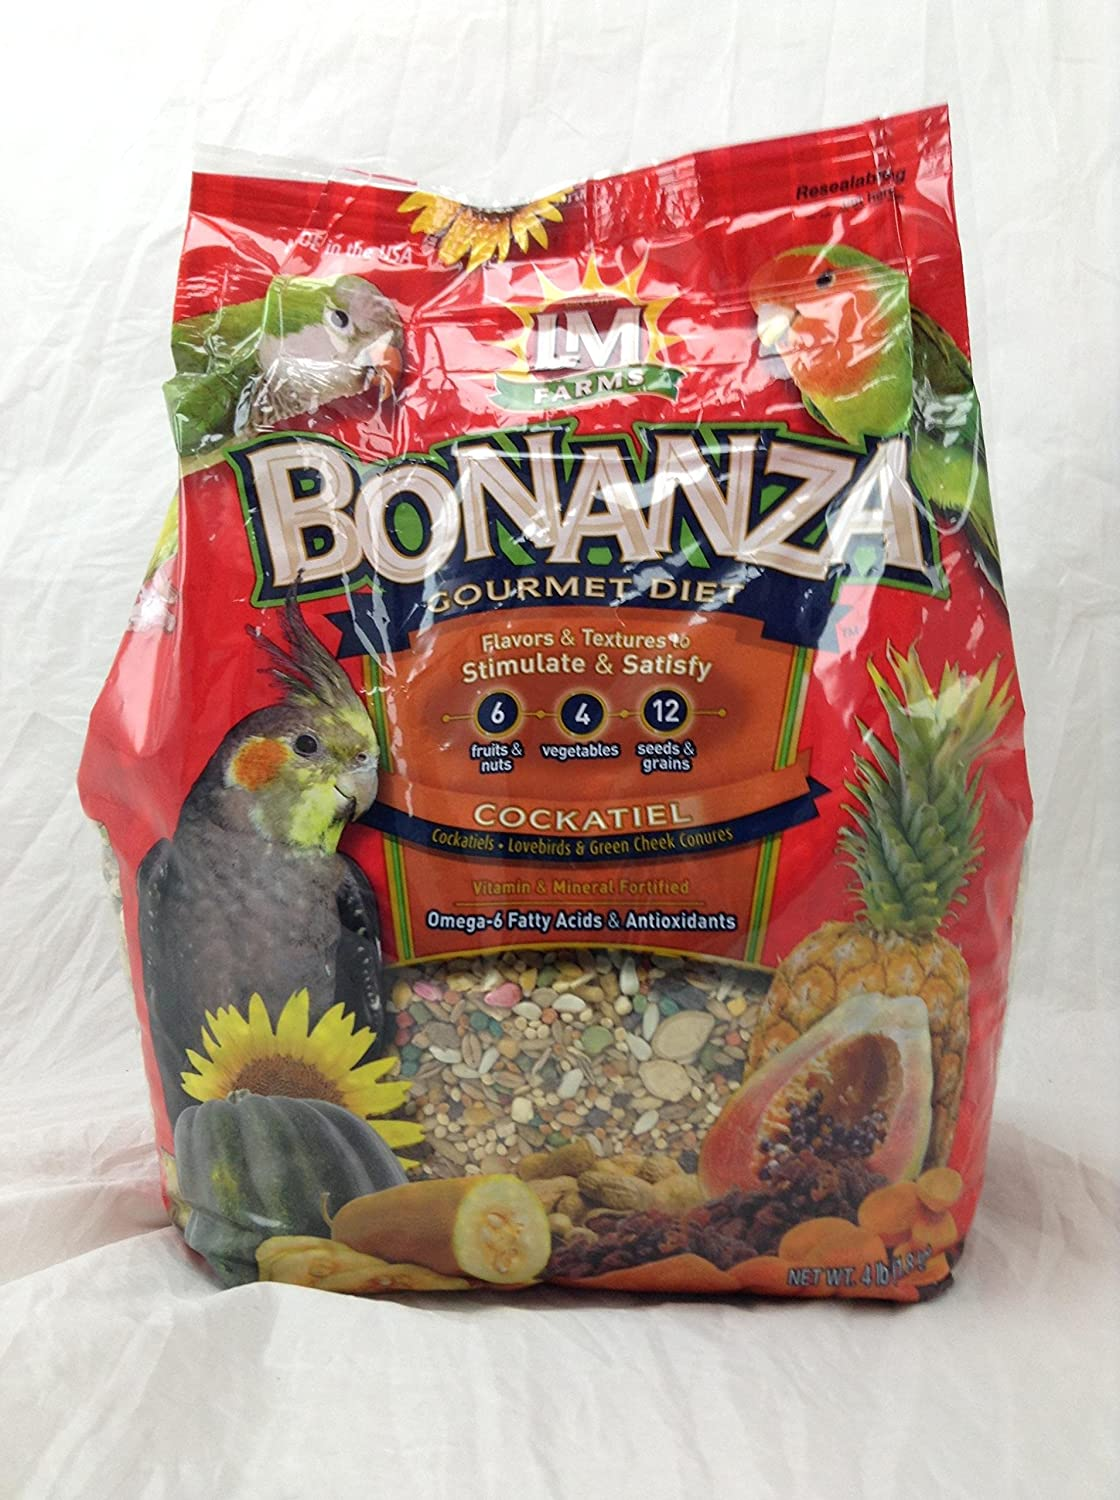 LM Animal Farms Bonanza Gourmet Diet Cockatiel andBird Food